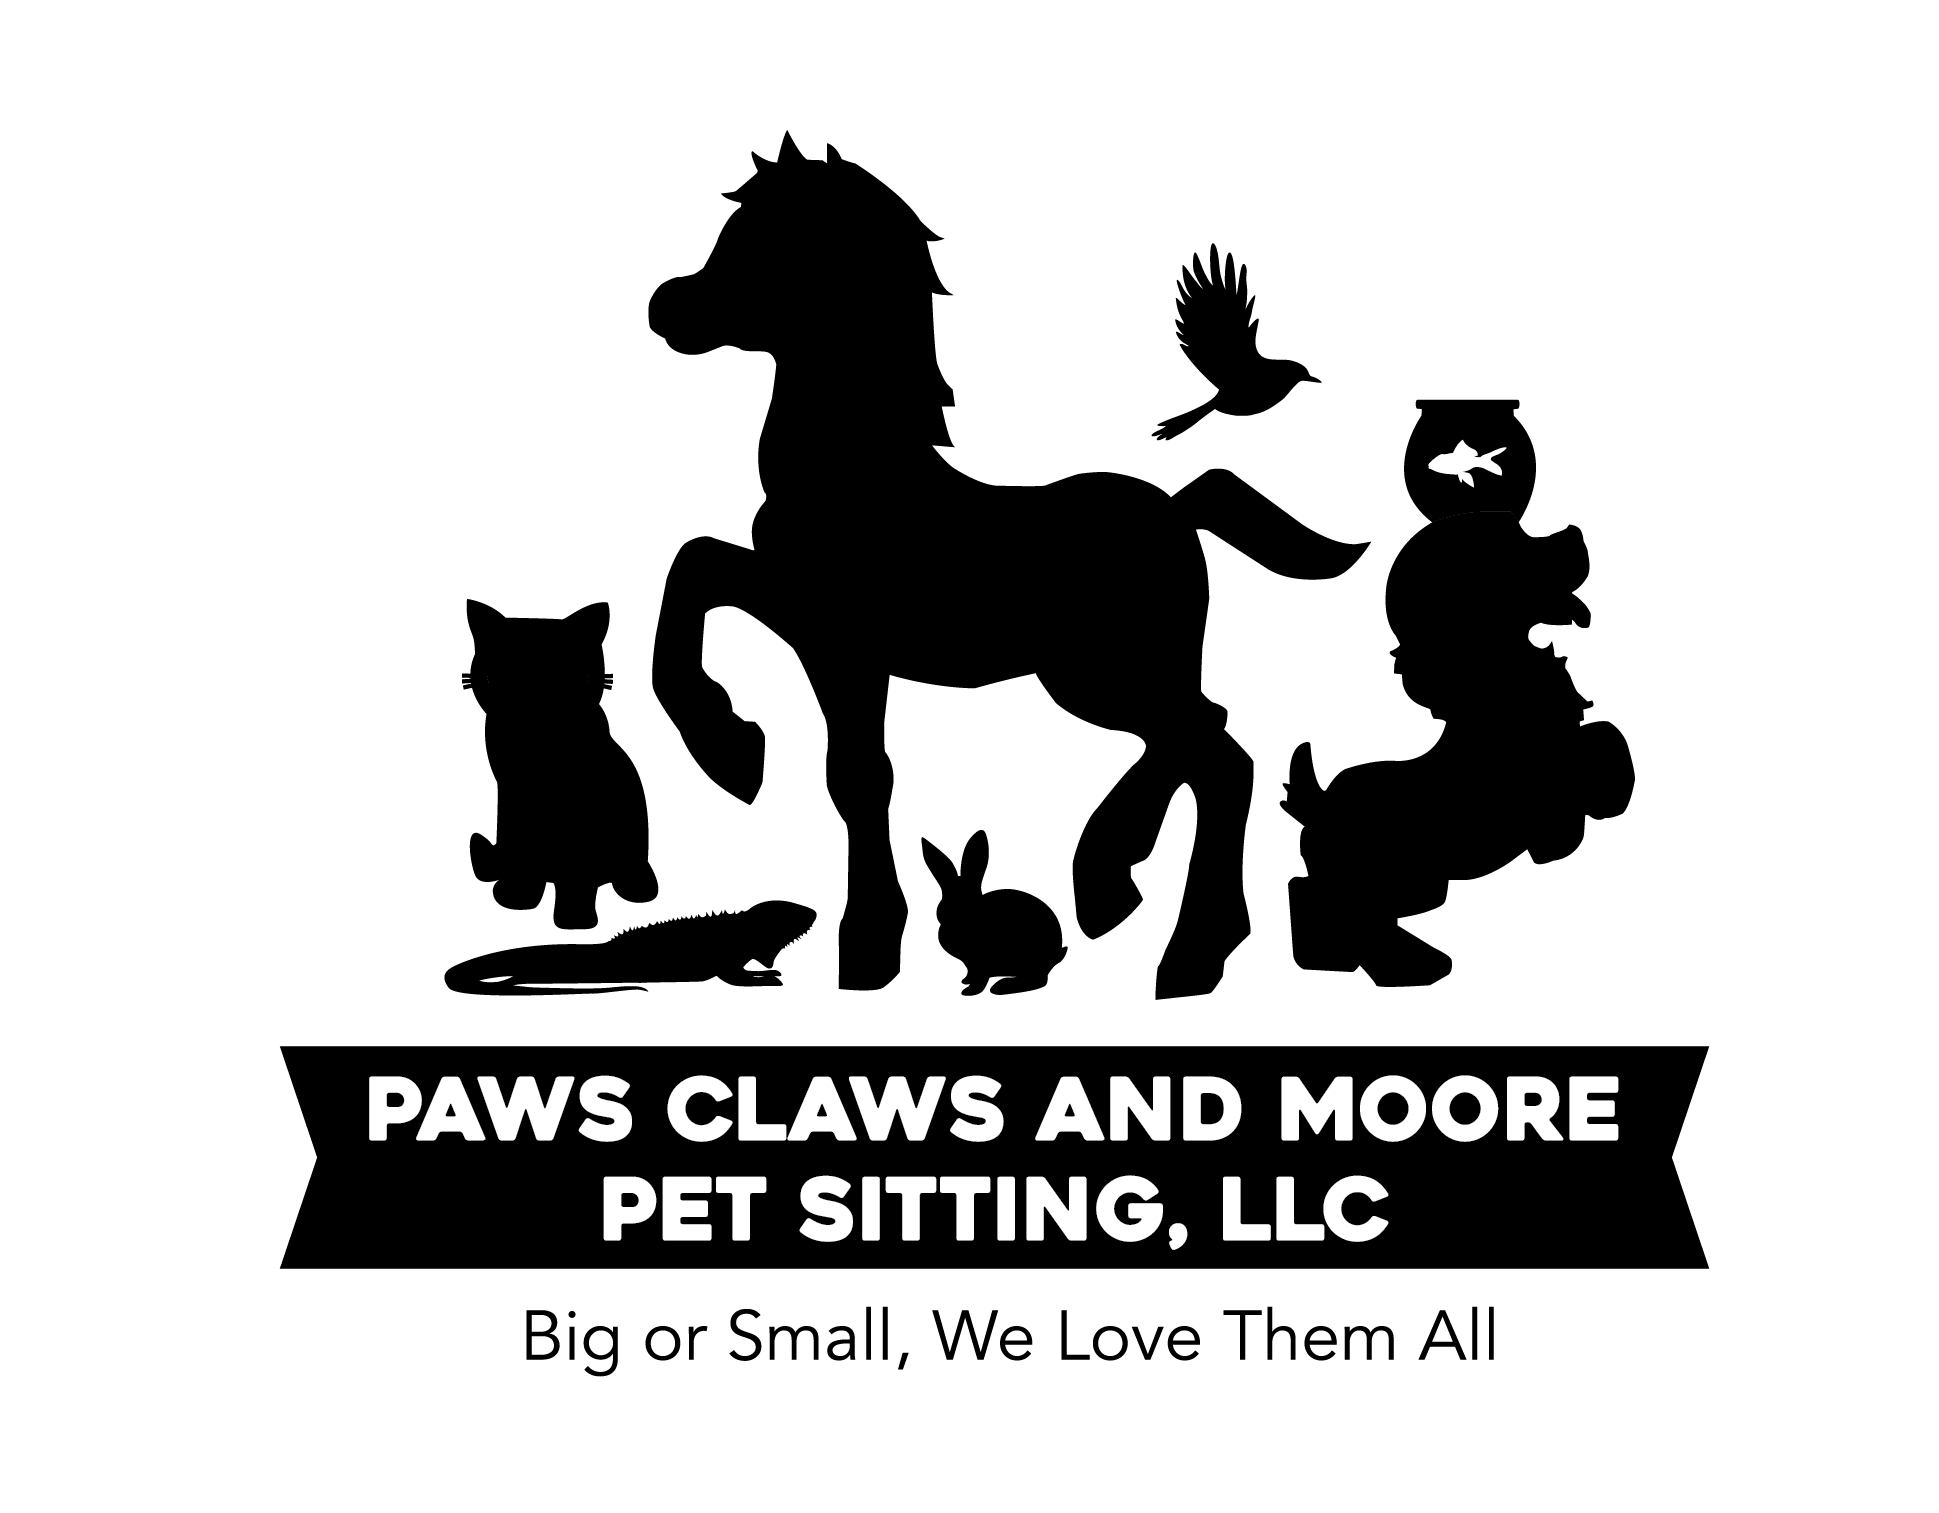 Paws Claws and Moore Pet Sitting, LLC